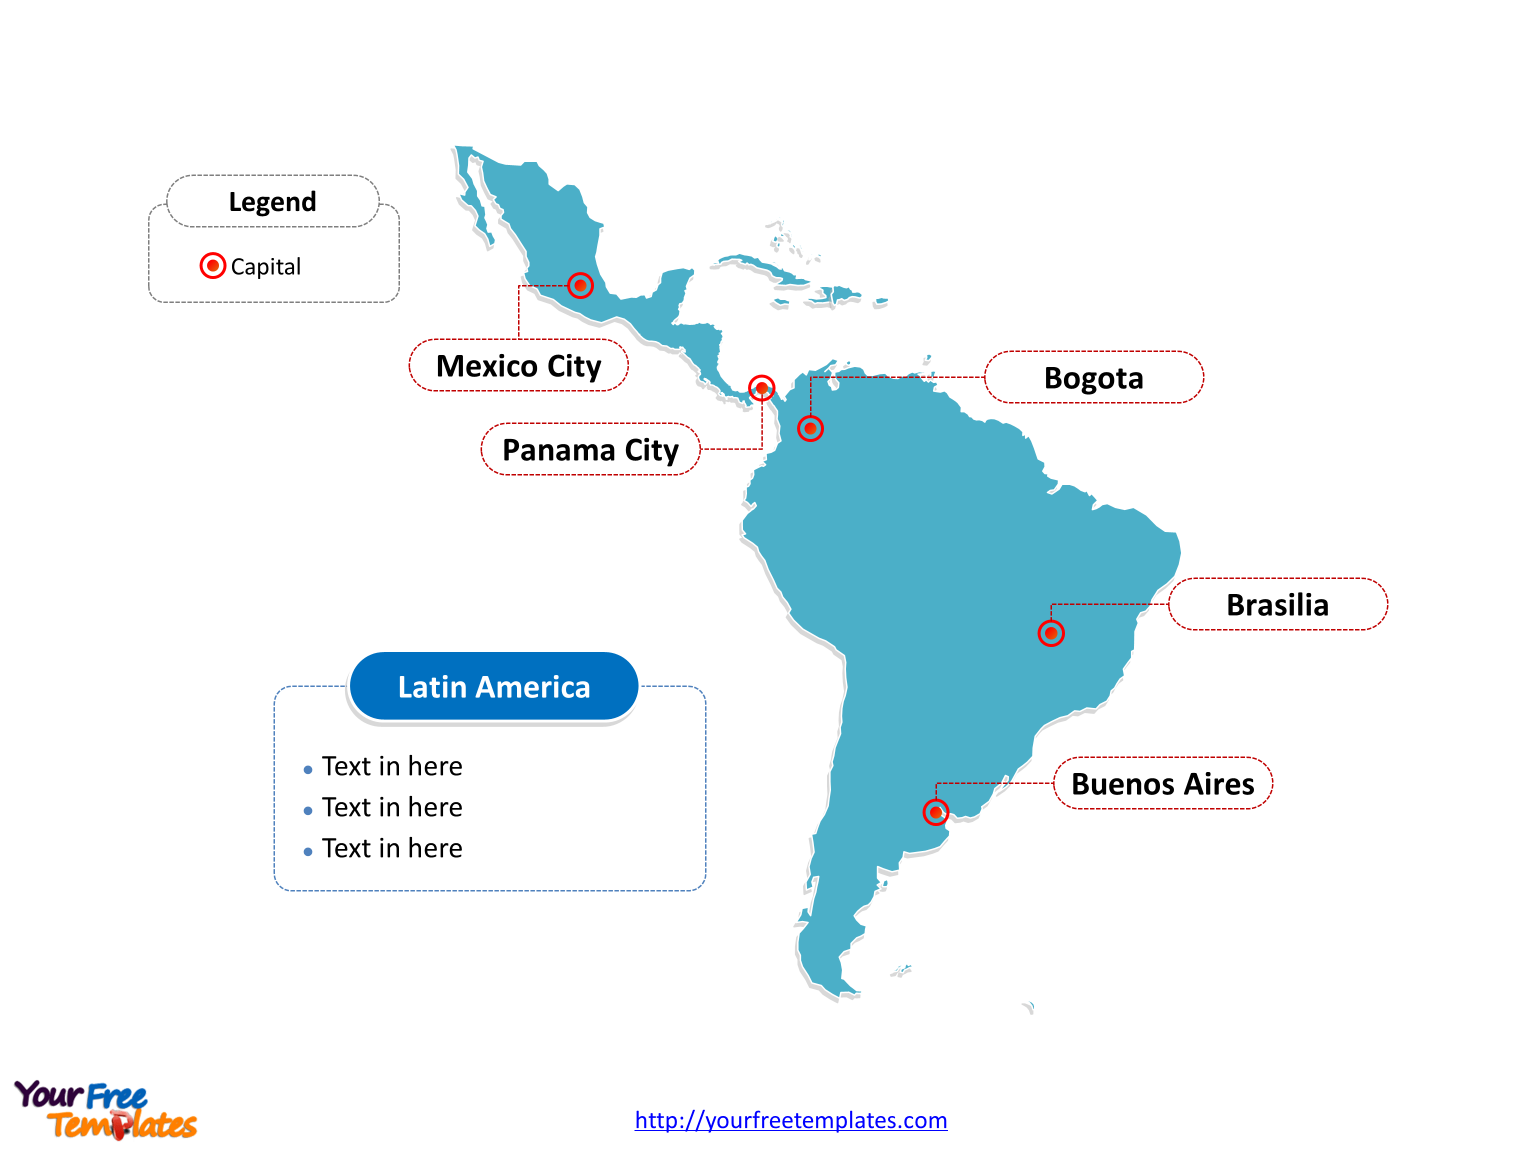 Map of Latin America with outline and cities labeled on the Blank Latin America map free templates